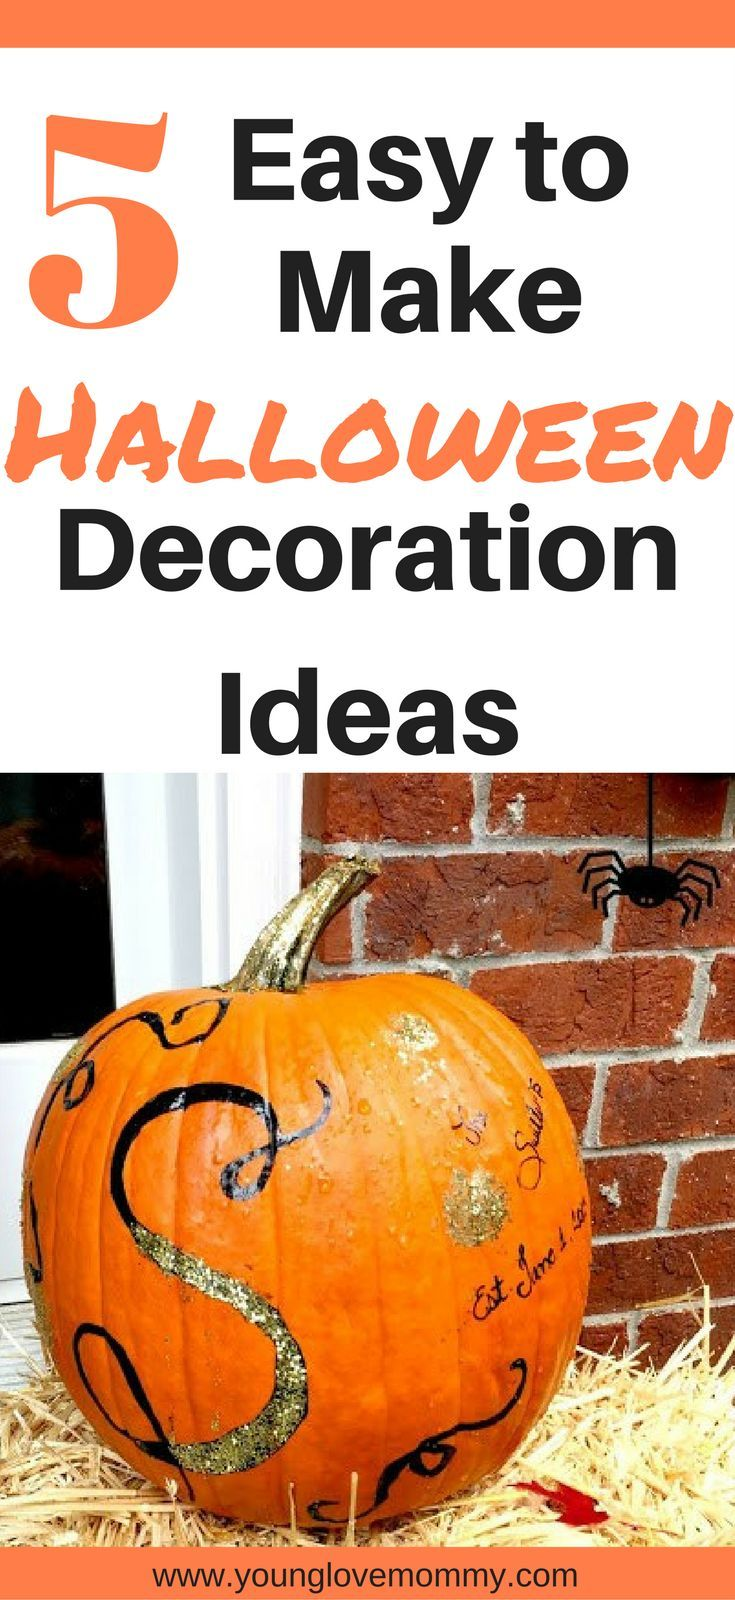 How to easily decorate your pumpkins for halloween using items you have at home with  little bit of creativity easy decoration ideas also quick  pumpkin decorations pinterest board rh